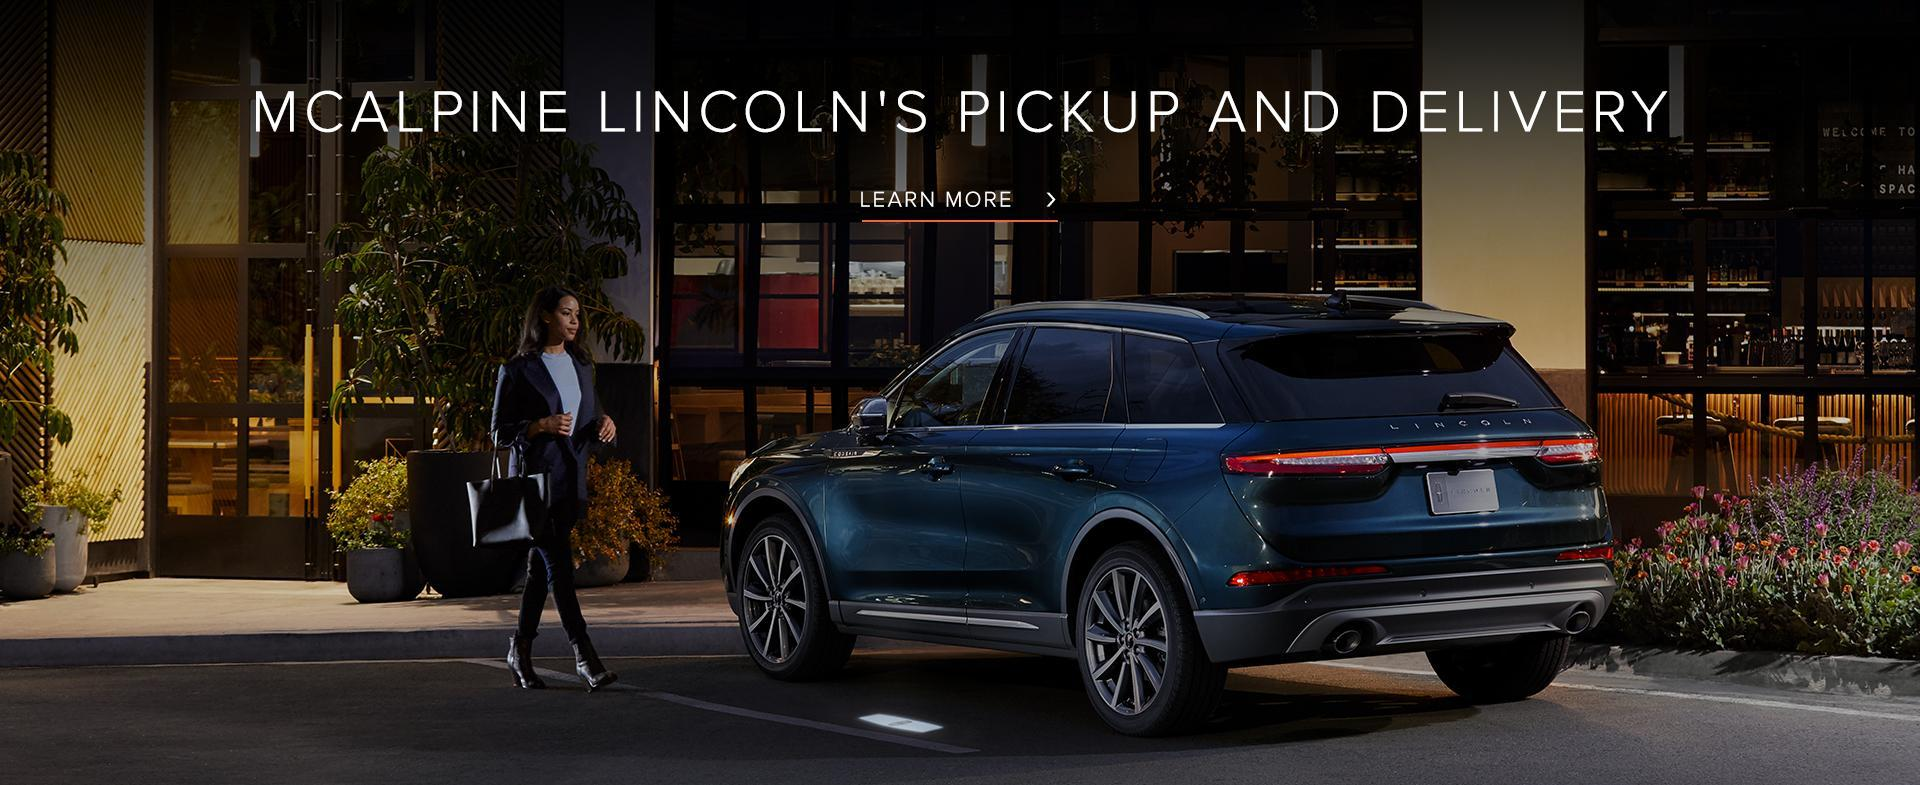 Lincoln Pickup & Delivery | McAlpine Lincoln